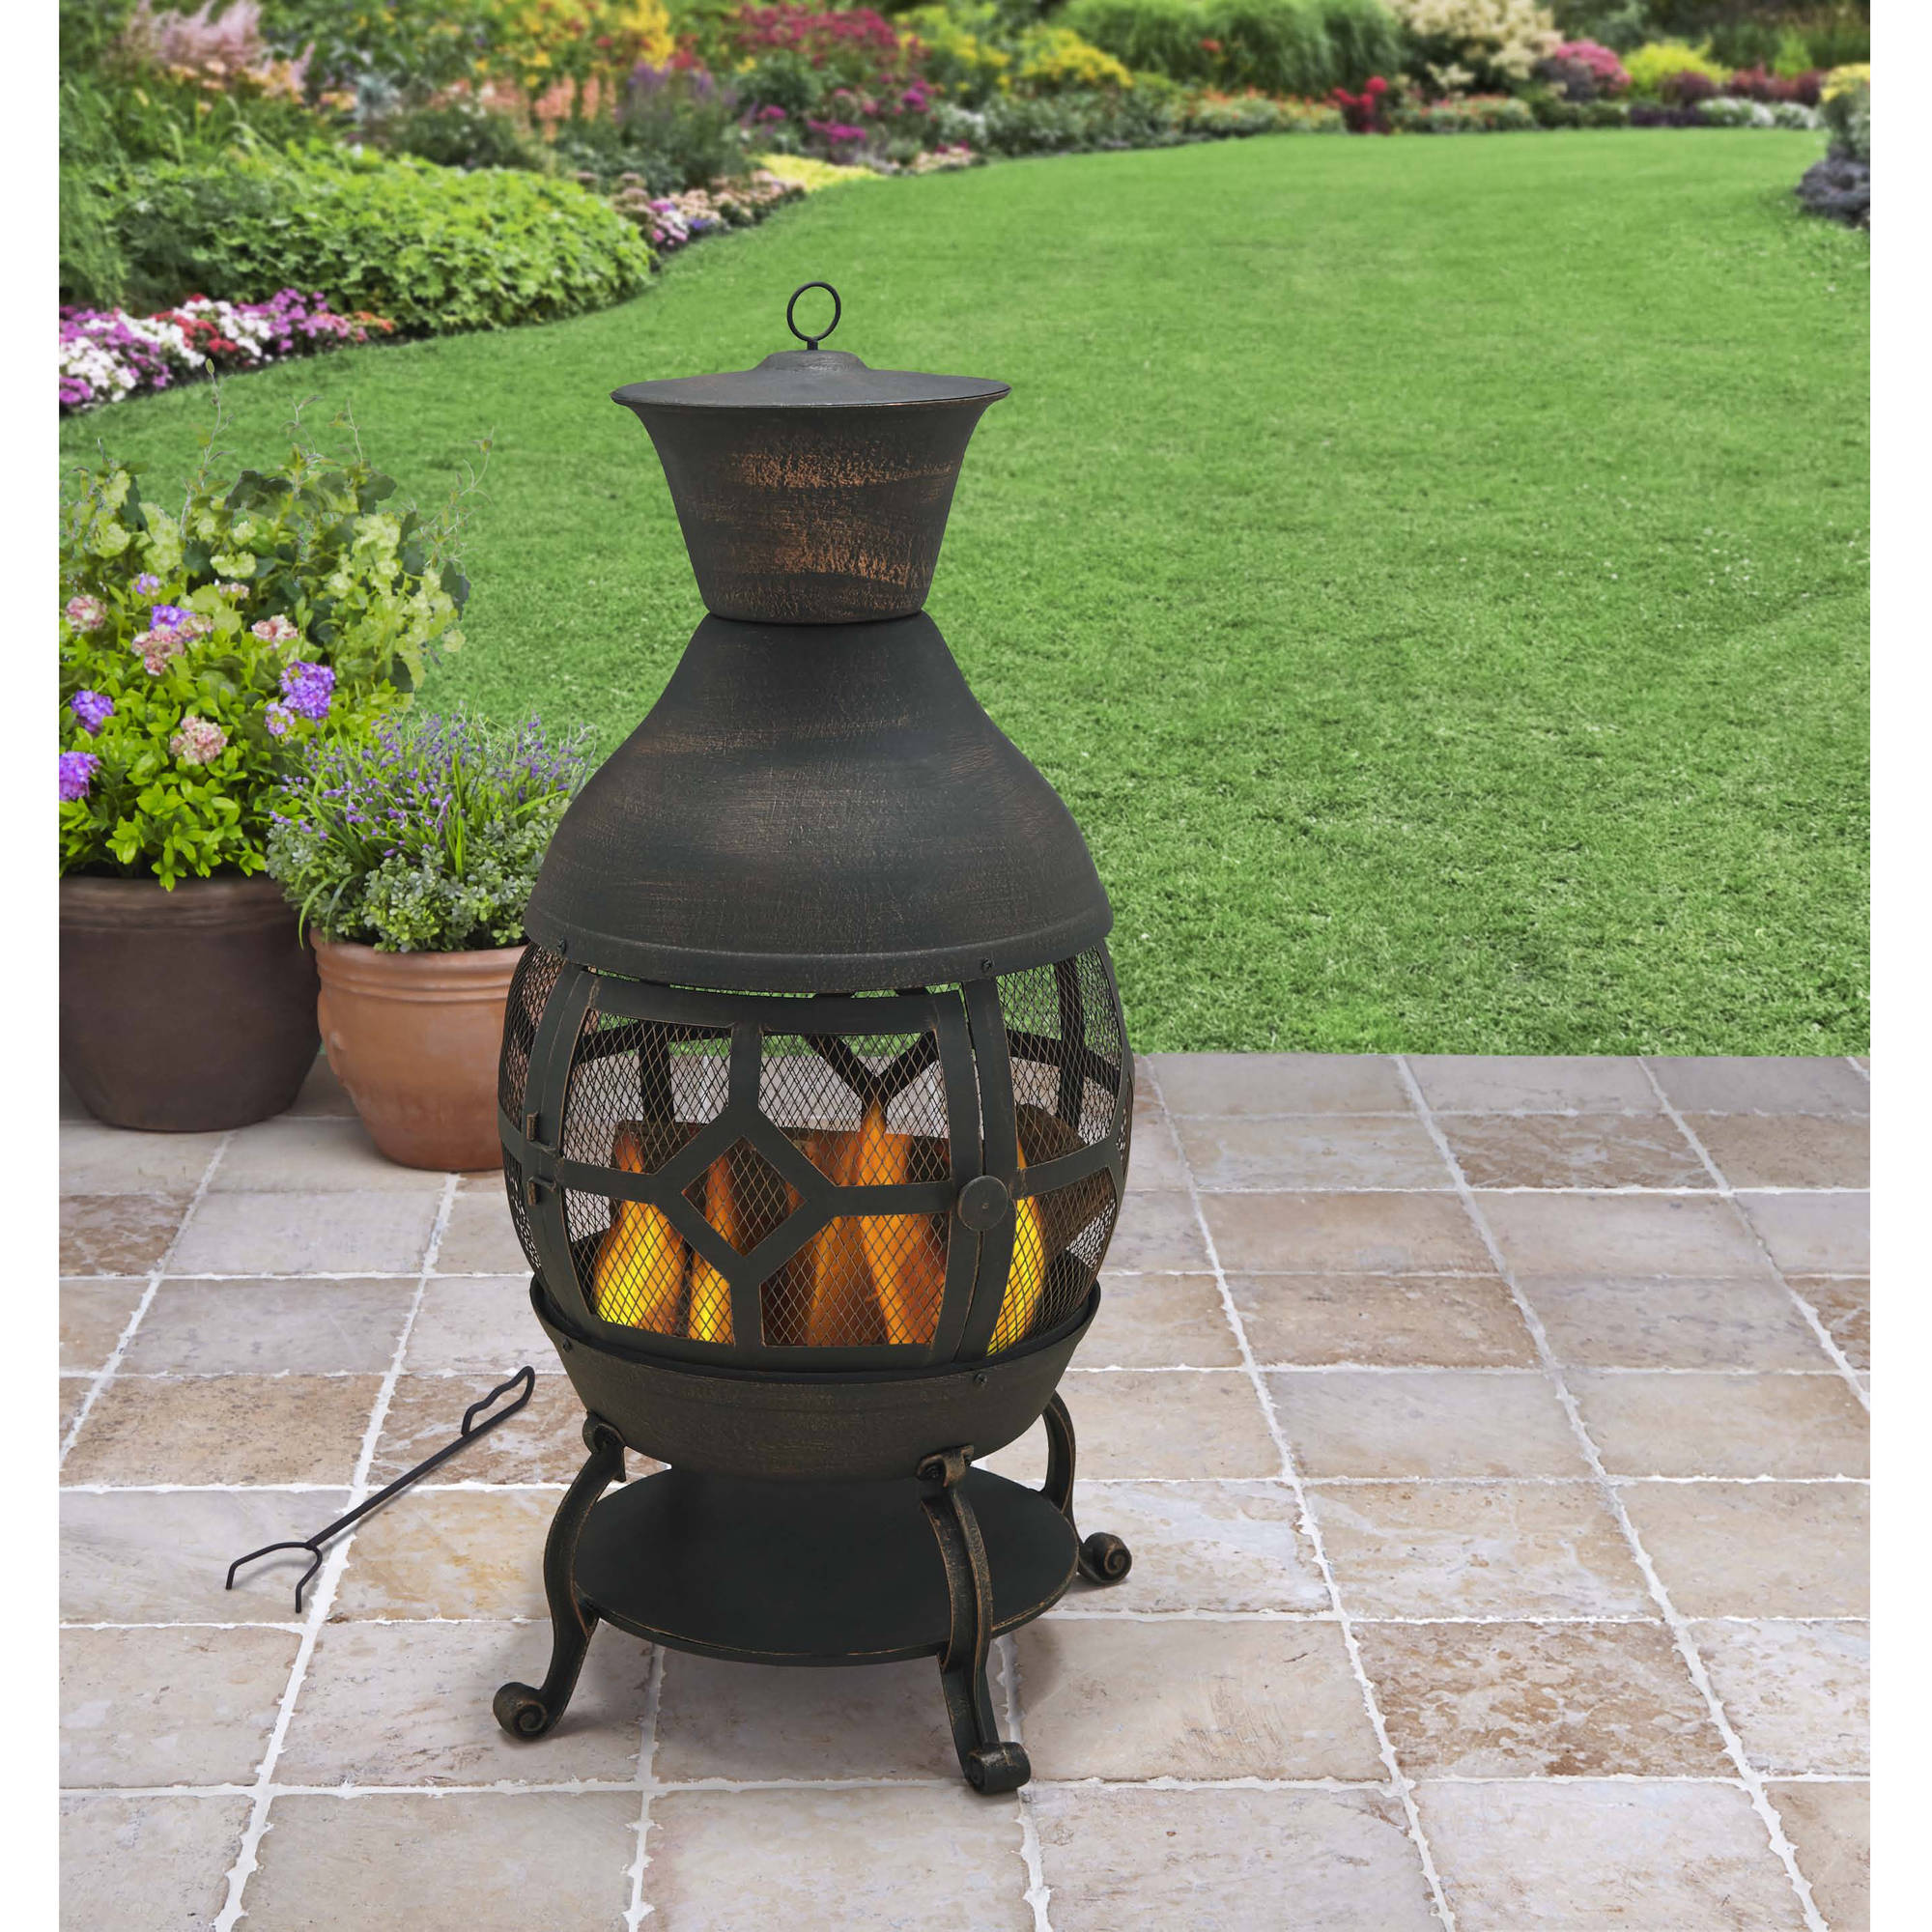 Better Homes and Gardens Cast Iron Chiminea, Antique Bronze